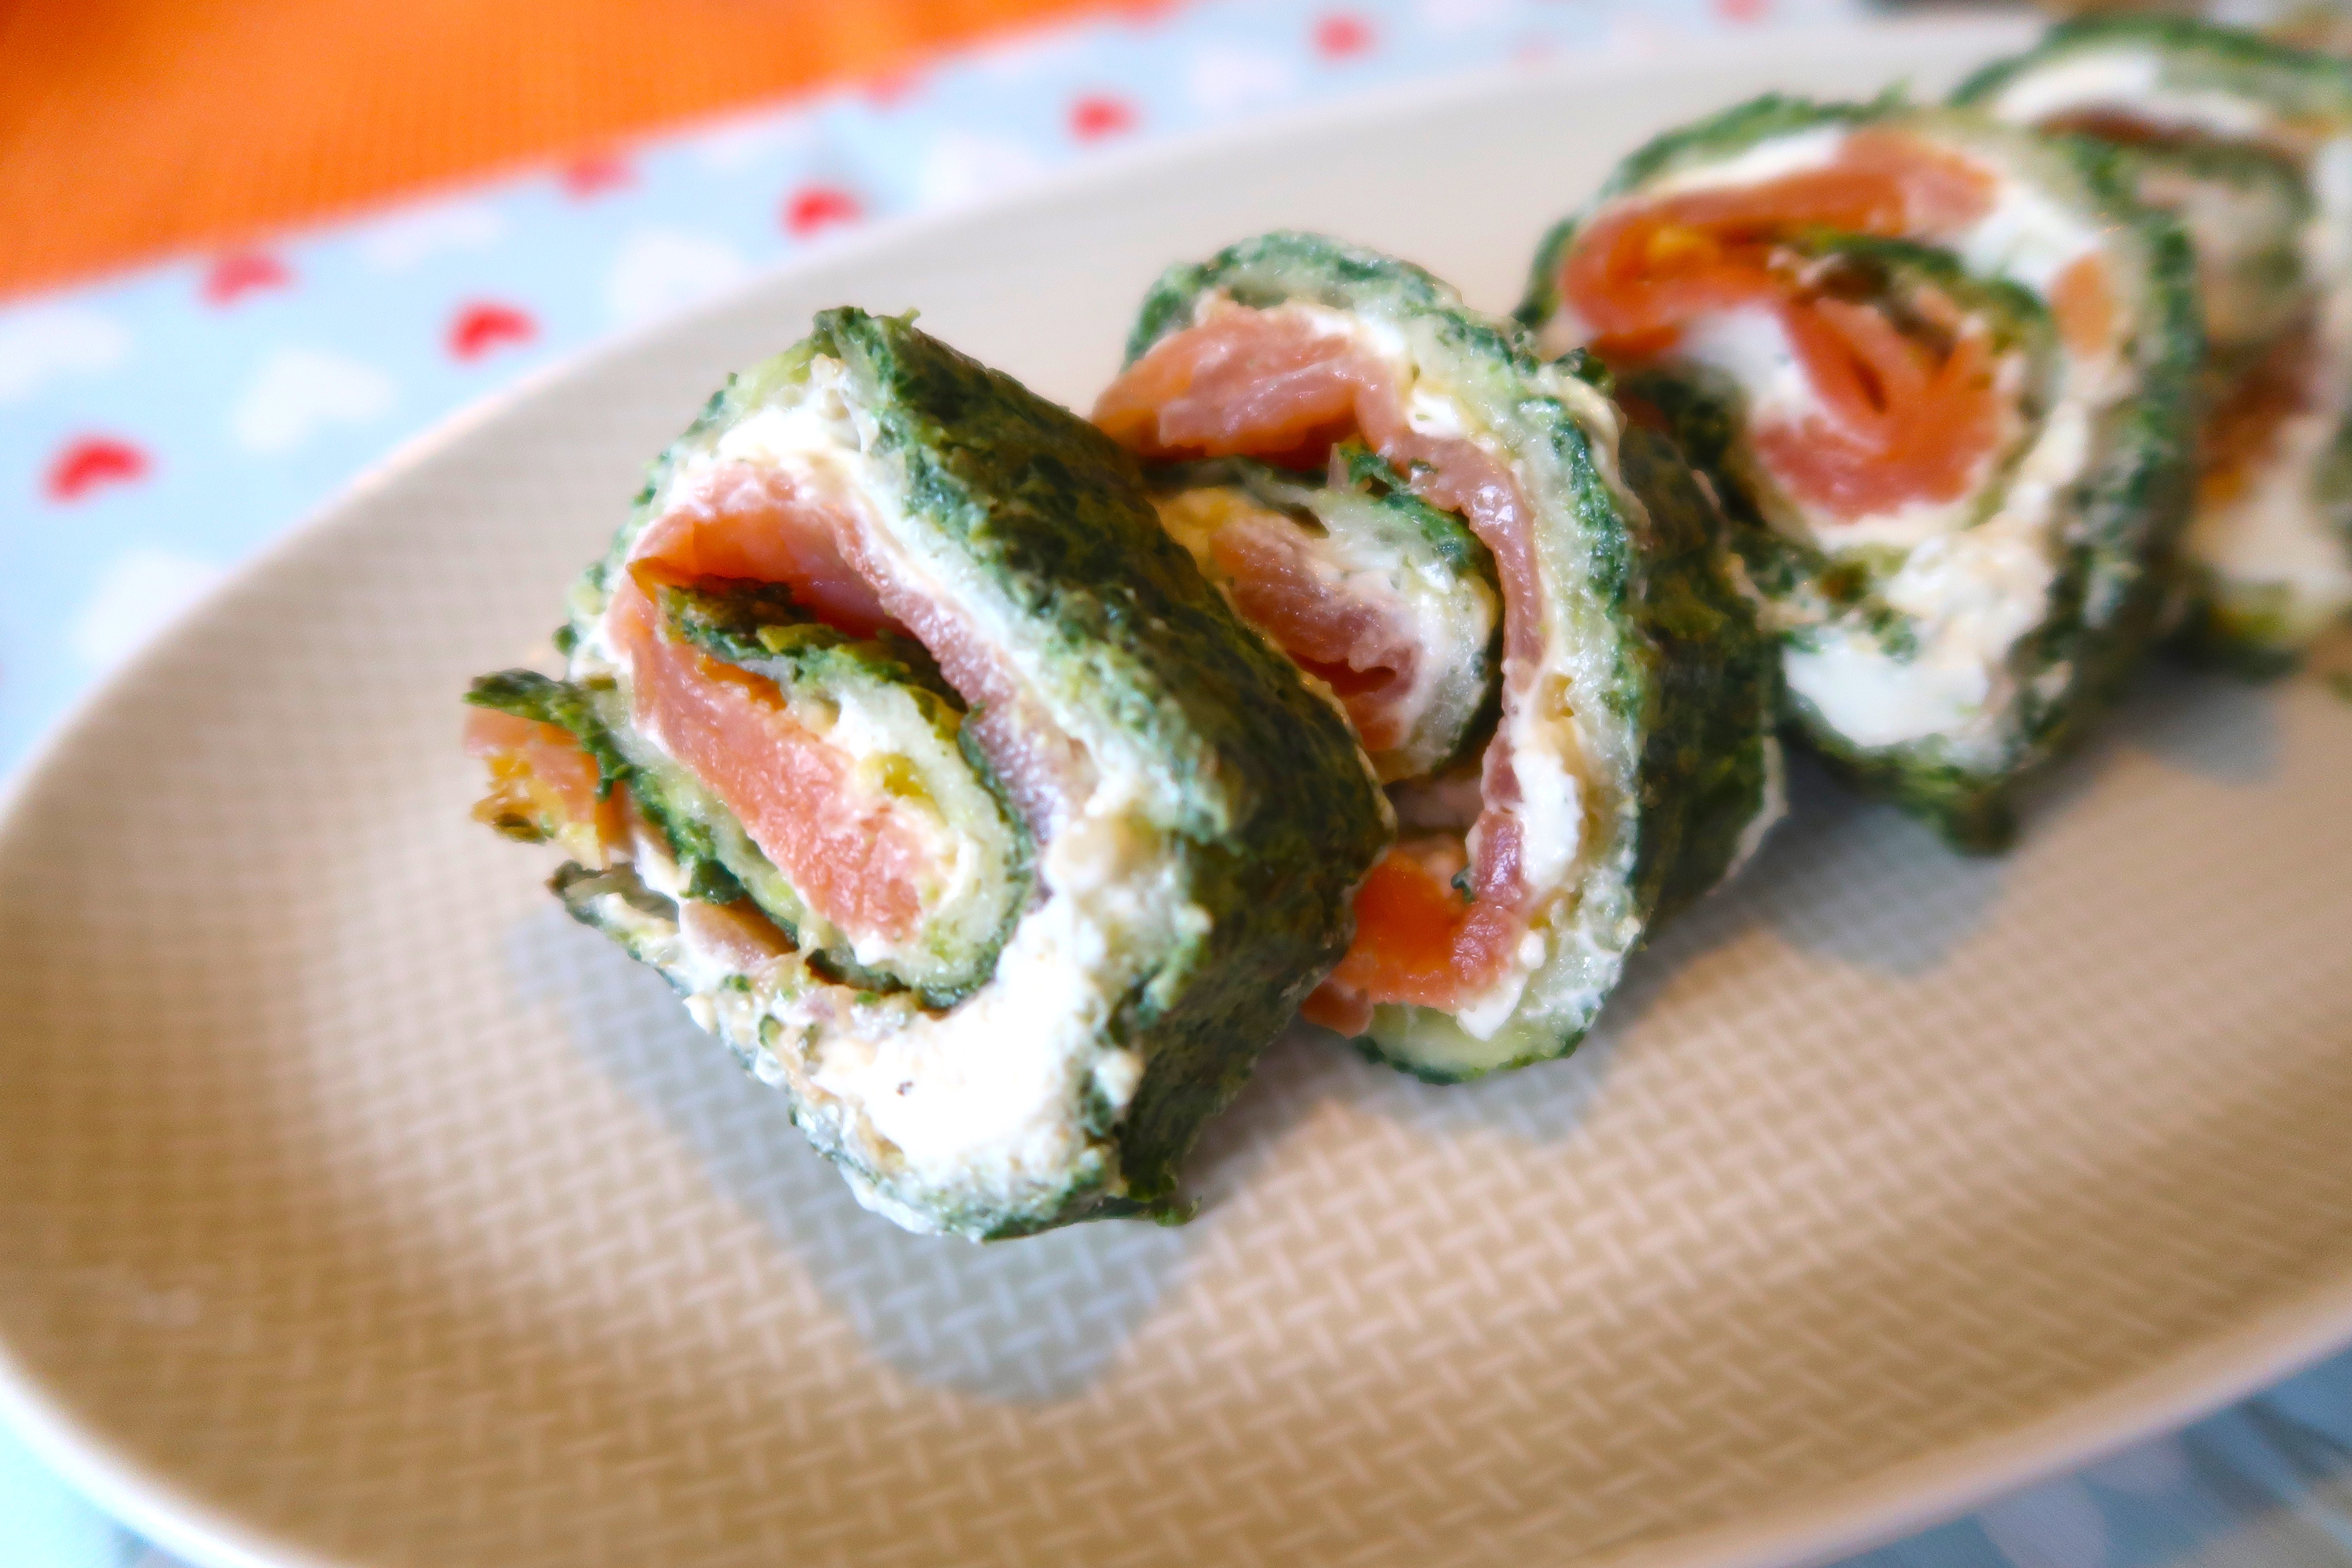 Fingerfood deluxe: Spinat-Lachs-Rolle